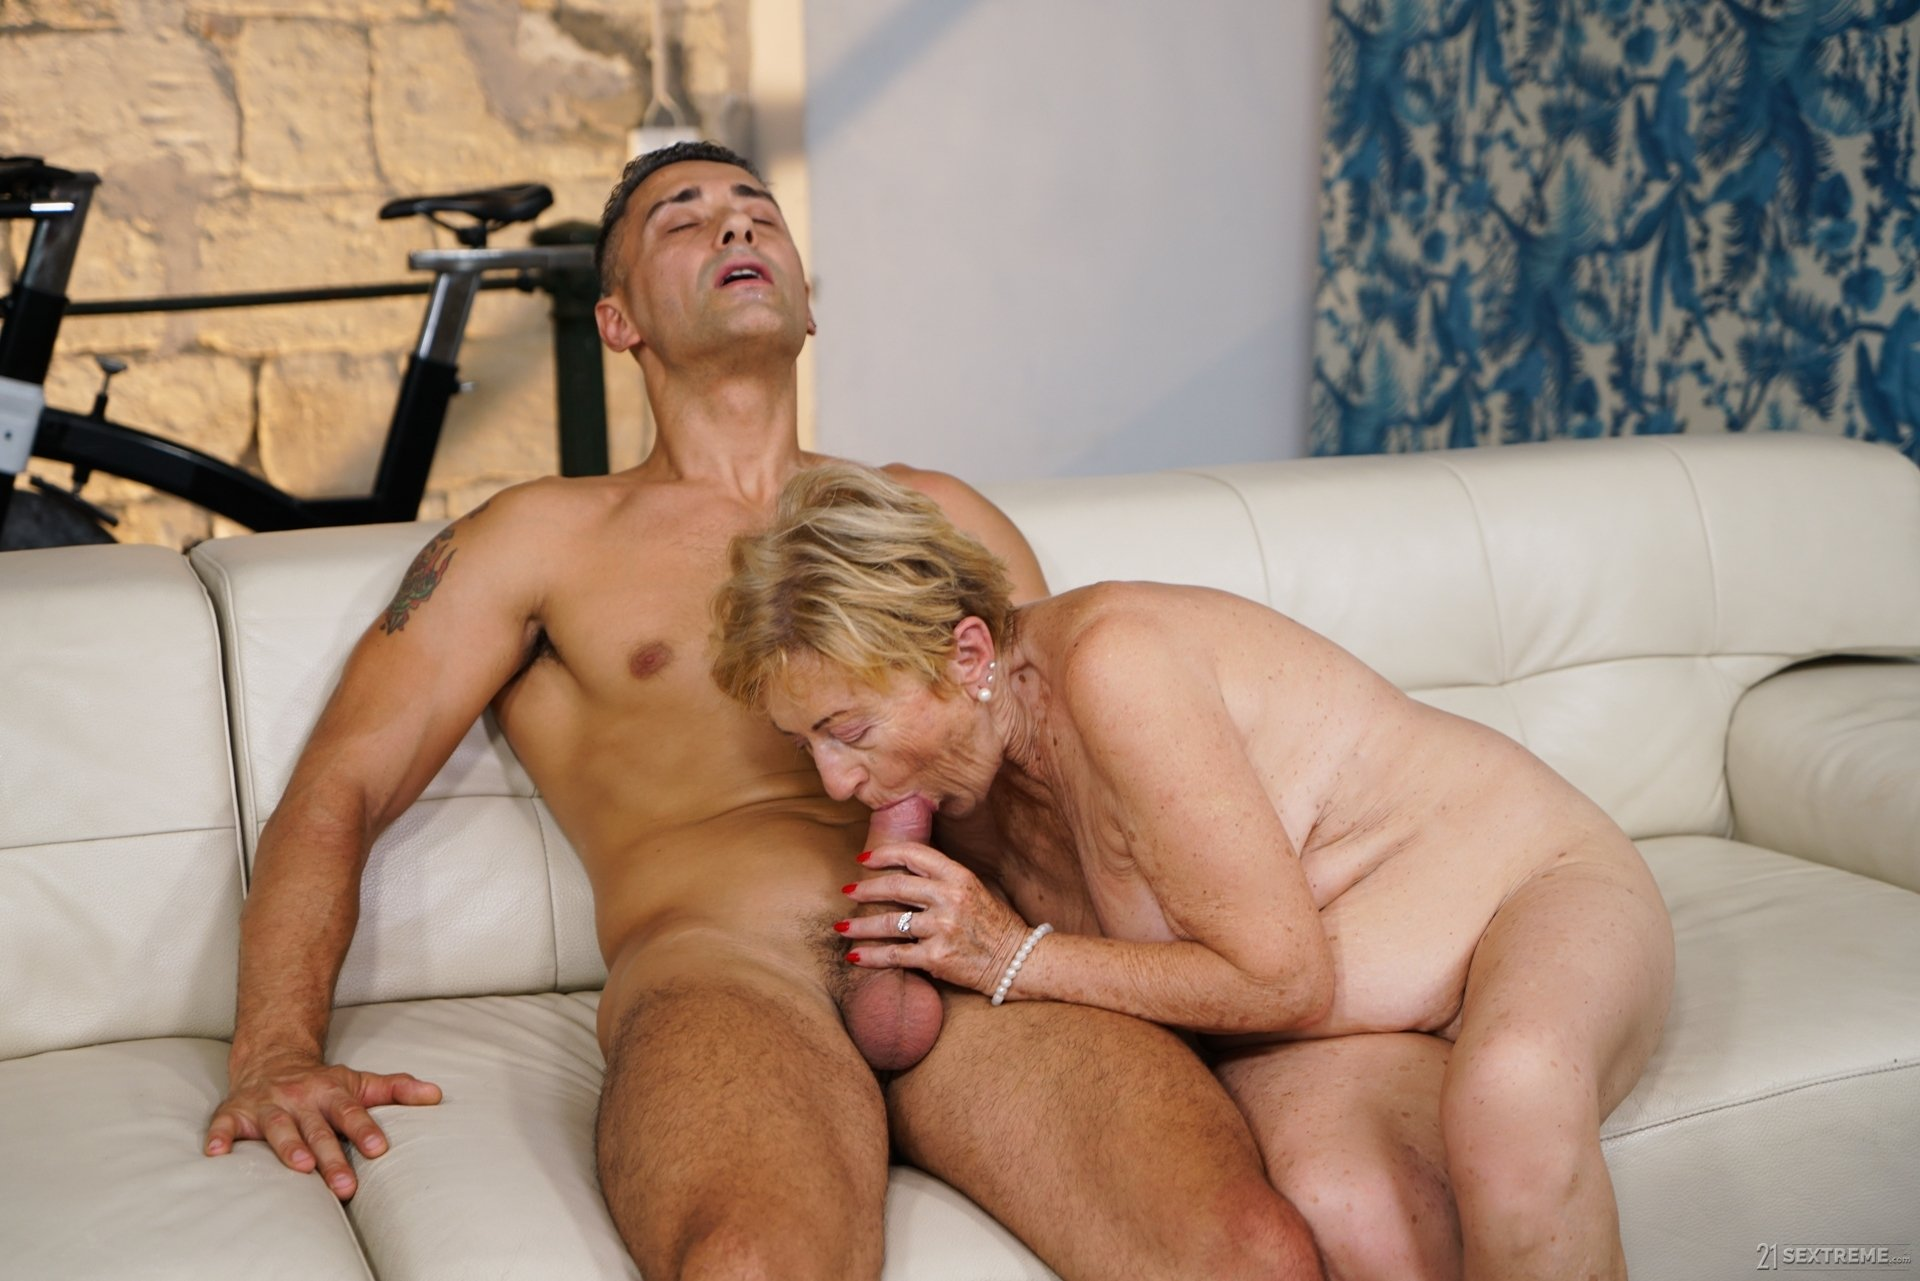 80 year old naked grannies Ex girlfriend deepthroat